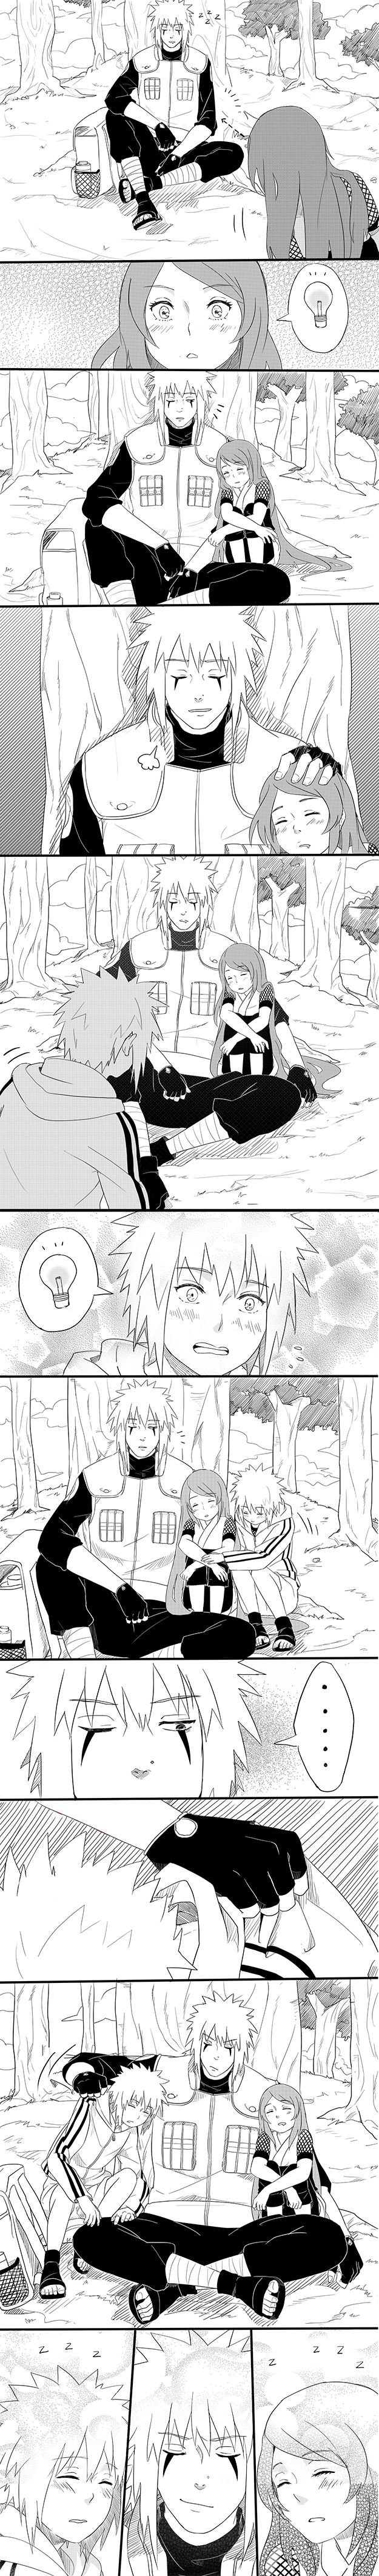 ,,Love from the beginning, Minato?""